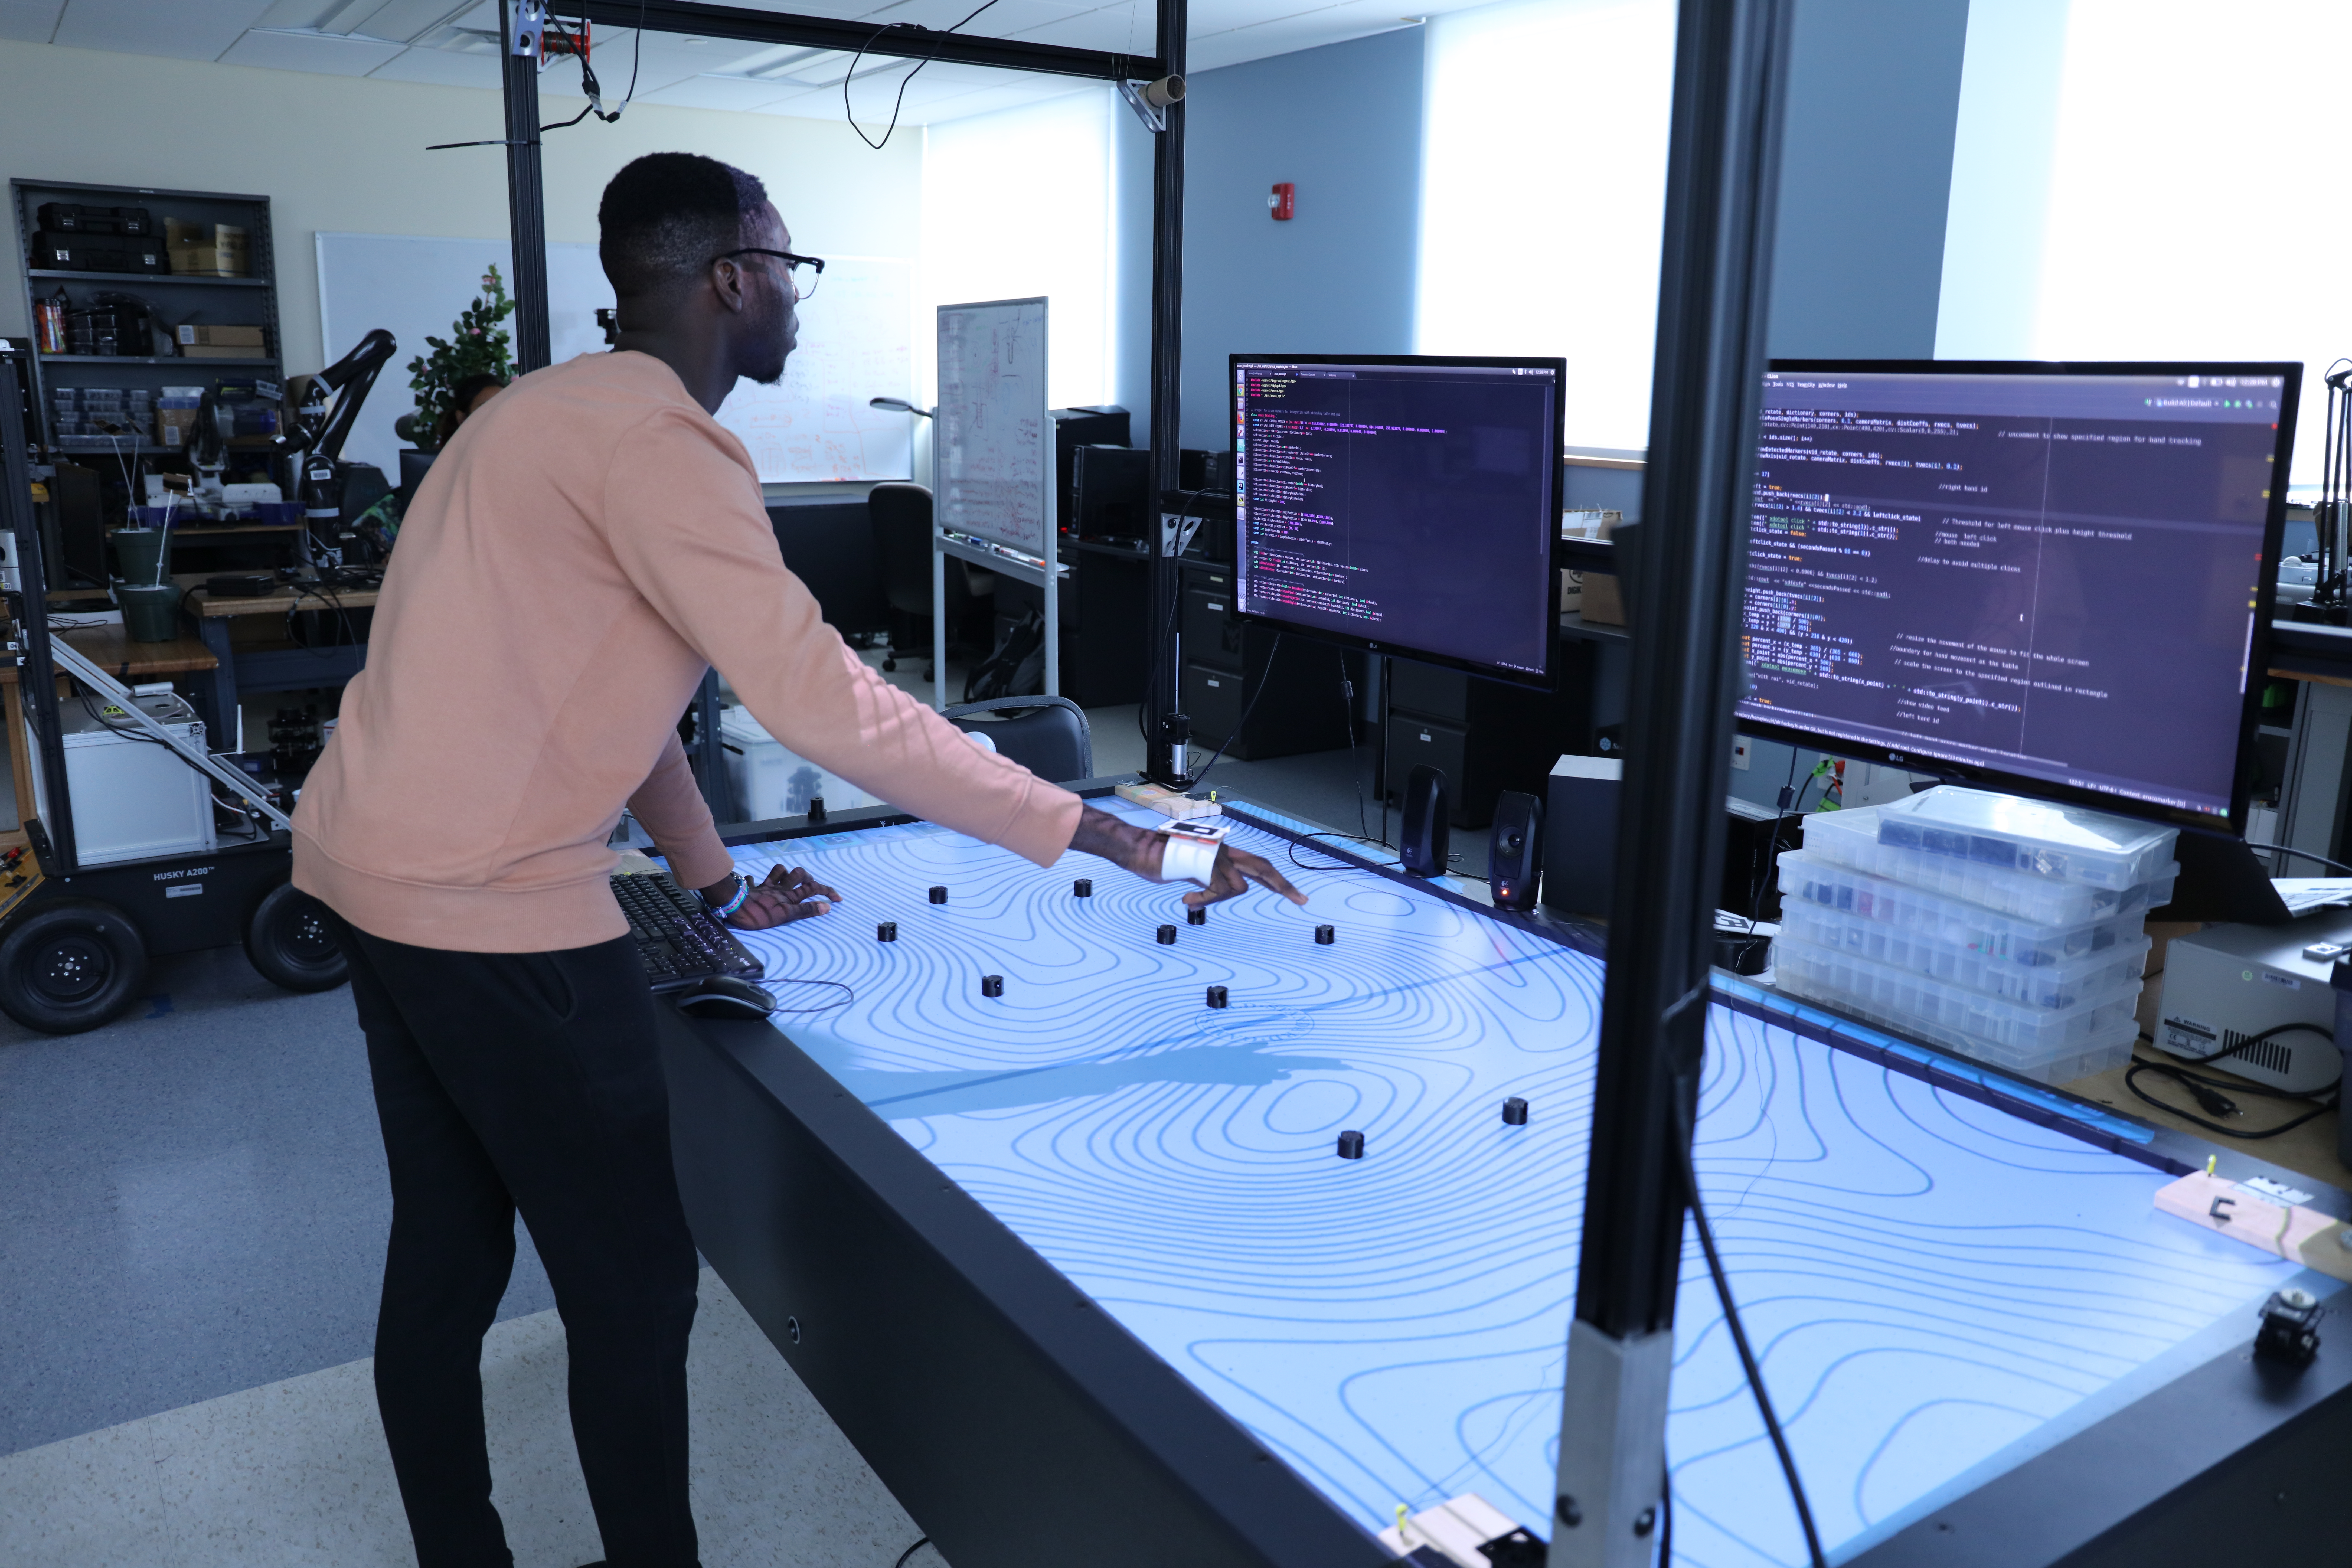 A tall man looks at a computer screen and an interactive whiteboard